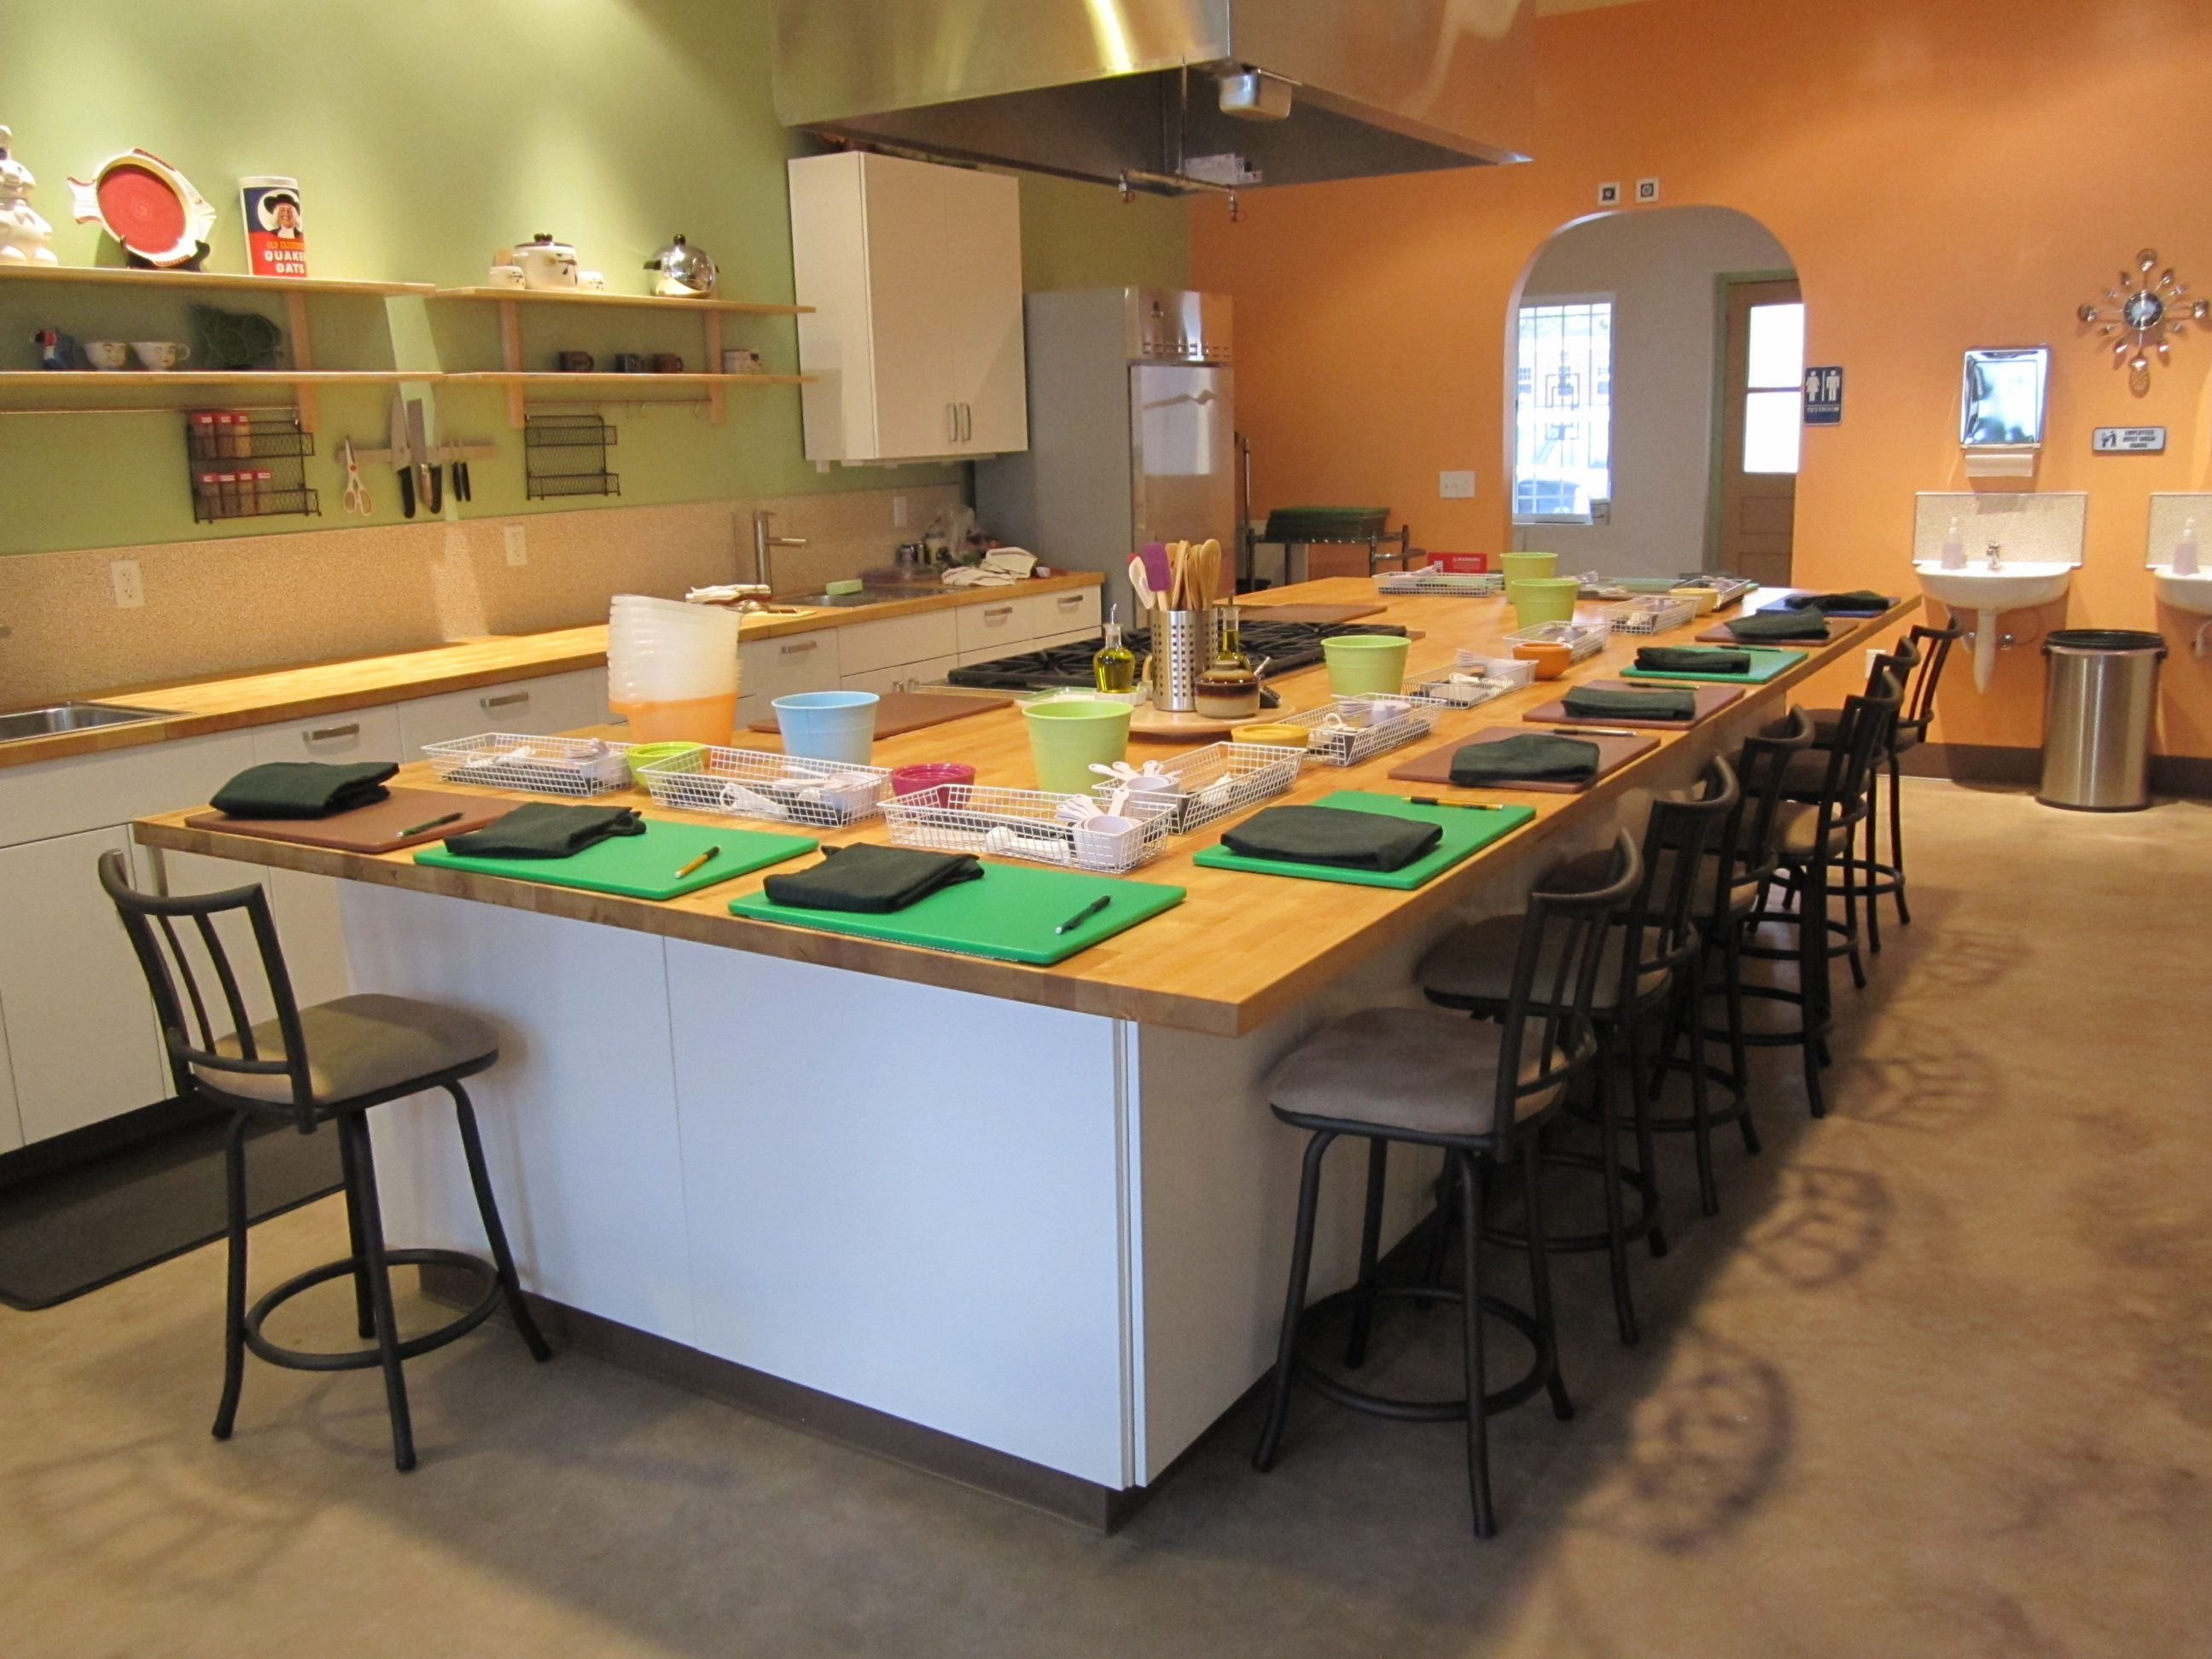 New Classroom Space Commercial Kitchen Design Kitchen Design Communal Kitchen